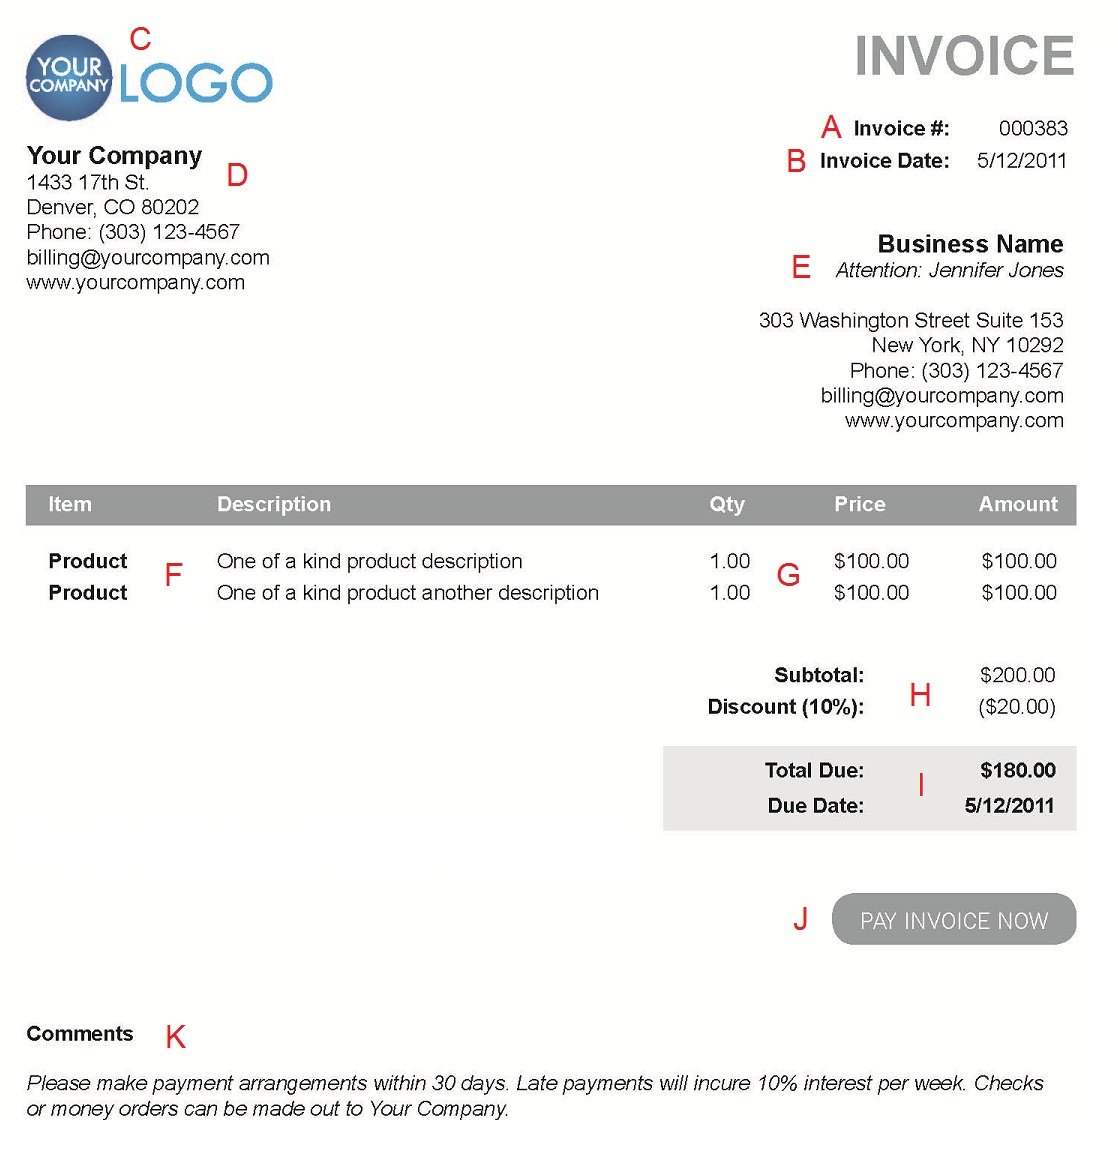 Usdgus  Stunning The  Different Sections Of An Electronic Payment Invoice With Entrancing A  With Agreeable Free Email Invoice Template Also Proforma Invoic In Addition Invoice Cost Of New Cars And Kia Optima Invoice Price As Well As Accounting And Invoicing Software For Small Business Additionally Electronic Invoicing System From Paysimplecom With Usdgus  Entrancing The  Different Sections Of An Electronic Payment Invoice With Agreeable A  And Stunning Free Email Invoice Template Also Proforma Invoic In Addition Invoice Cost Of New Cars From Paysimplecom